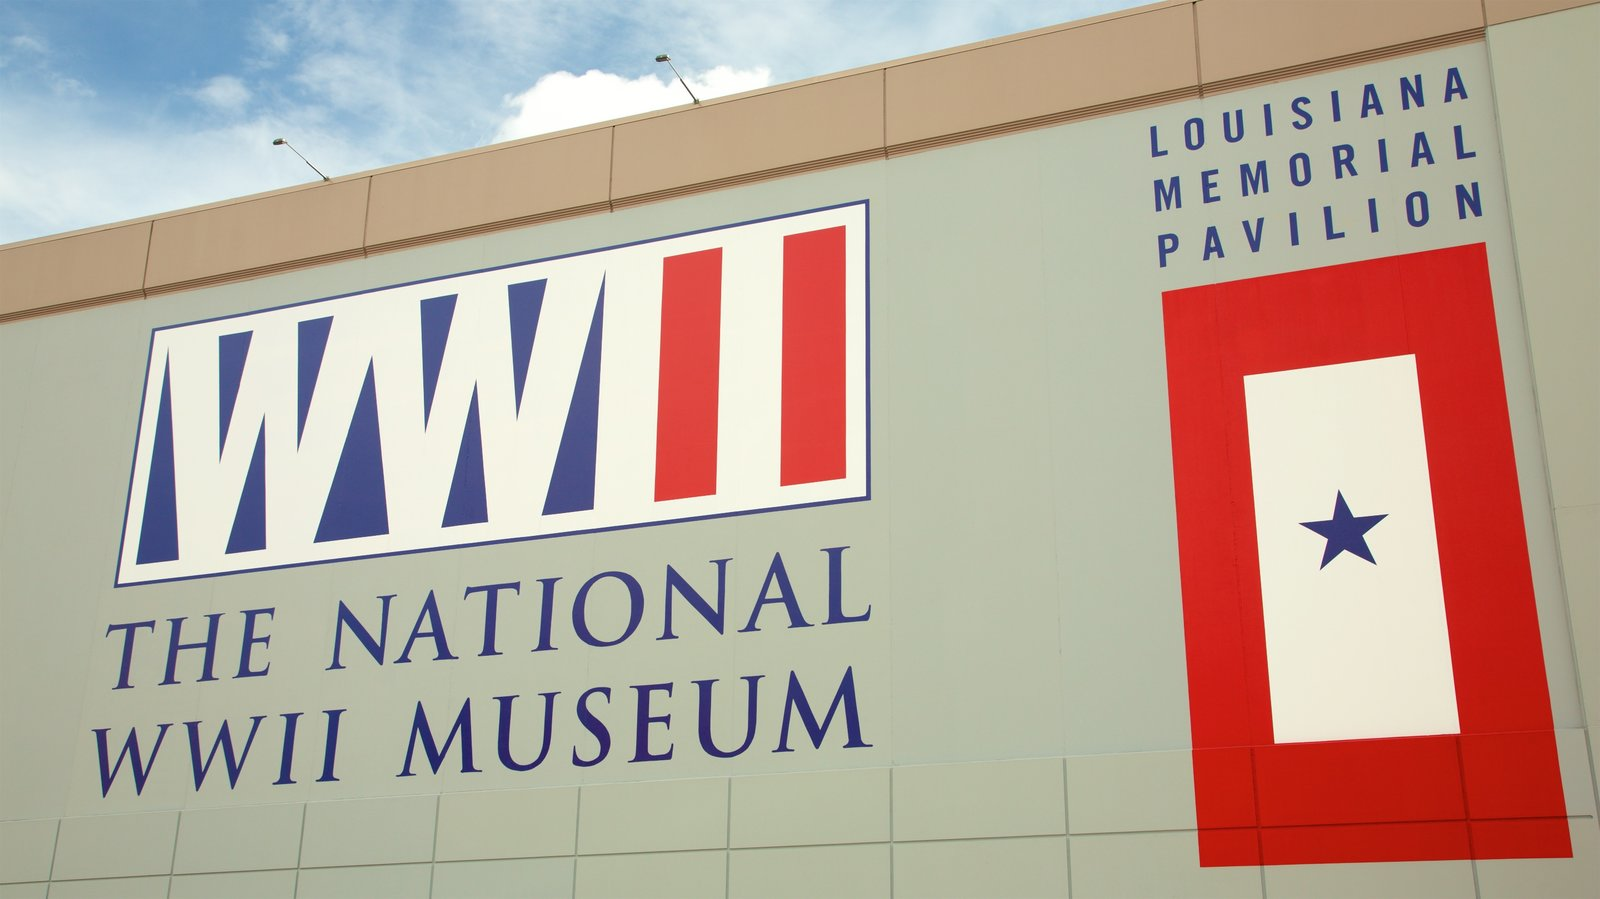 National World War II Museum Pictures View Photos  Images Of - World war ii museums in usa